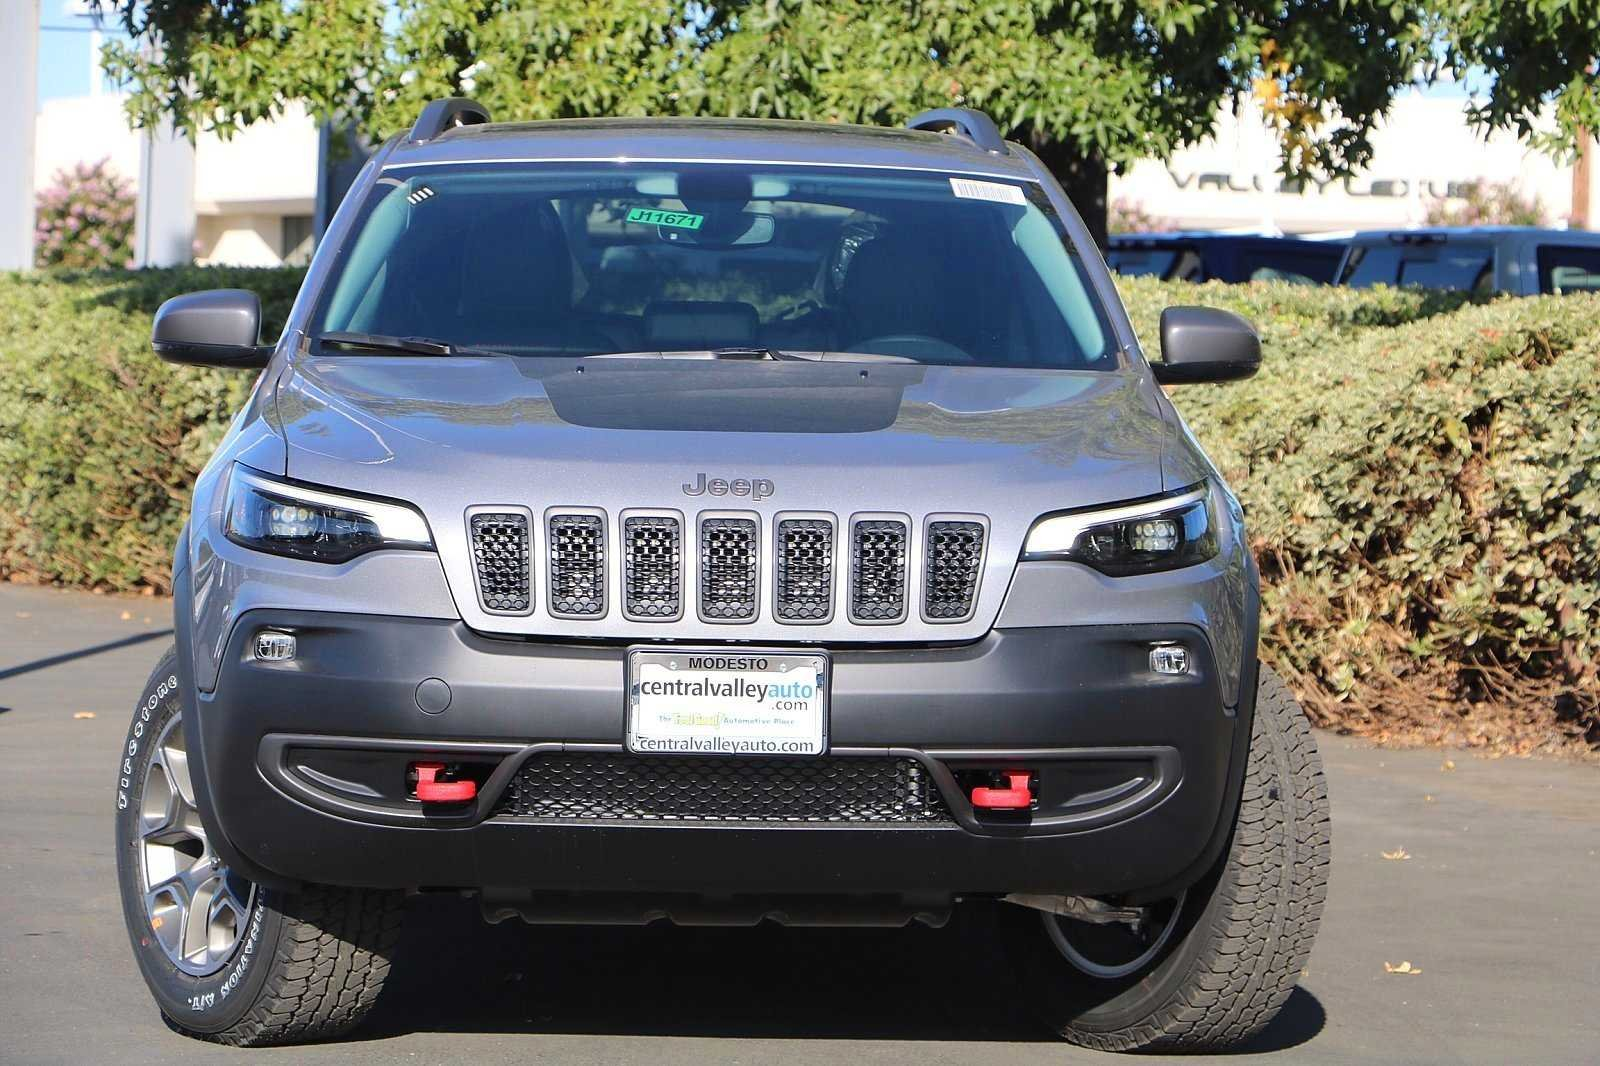 New 2020 JEEP Cherokee Trailhawk Elite